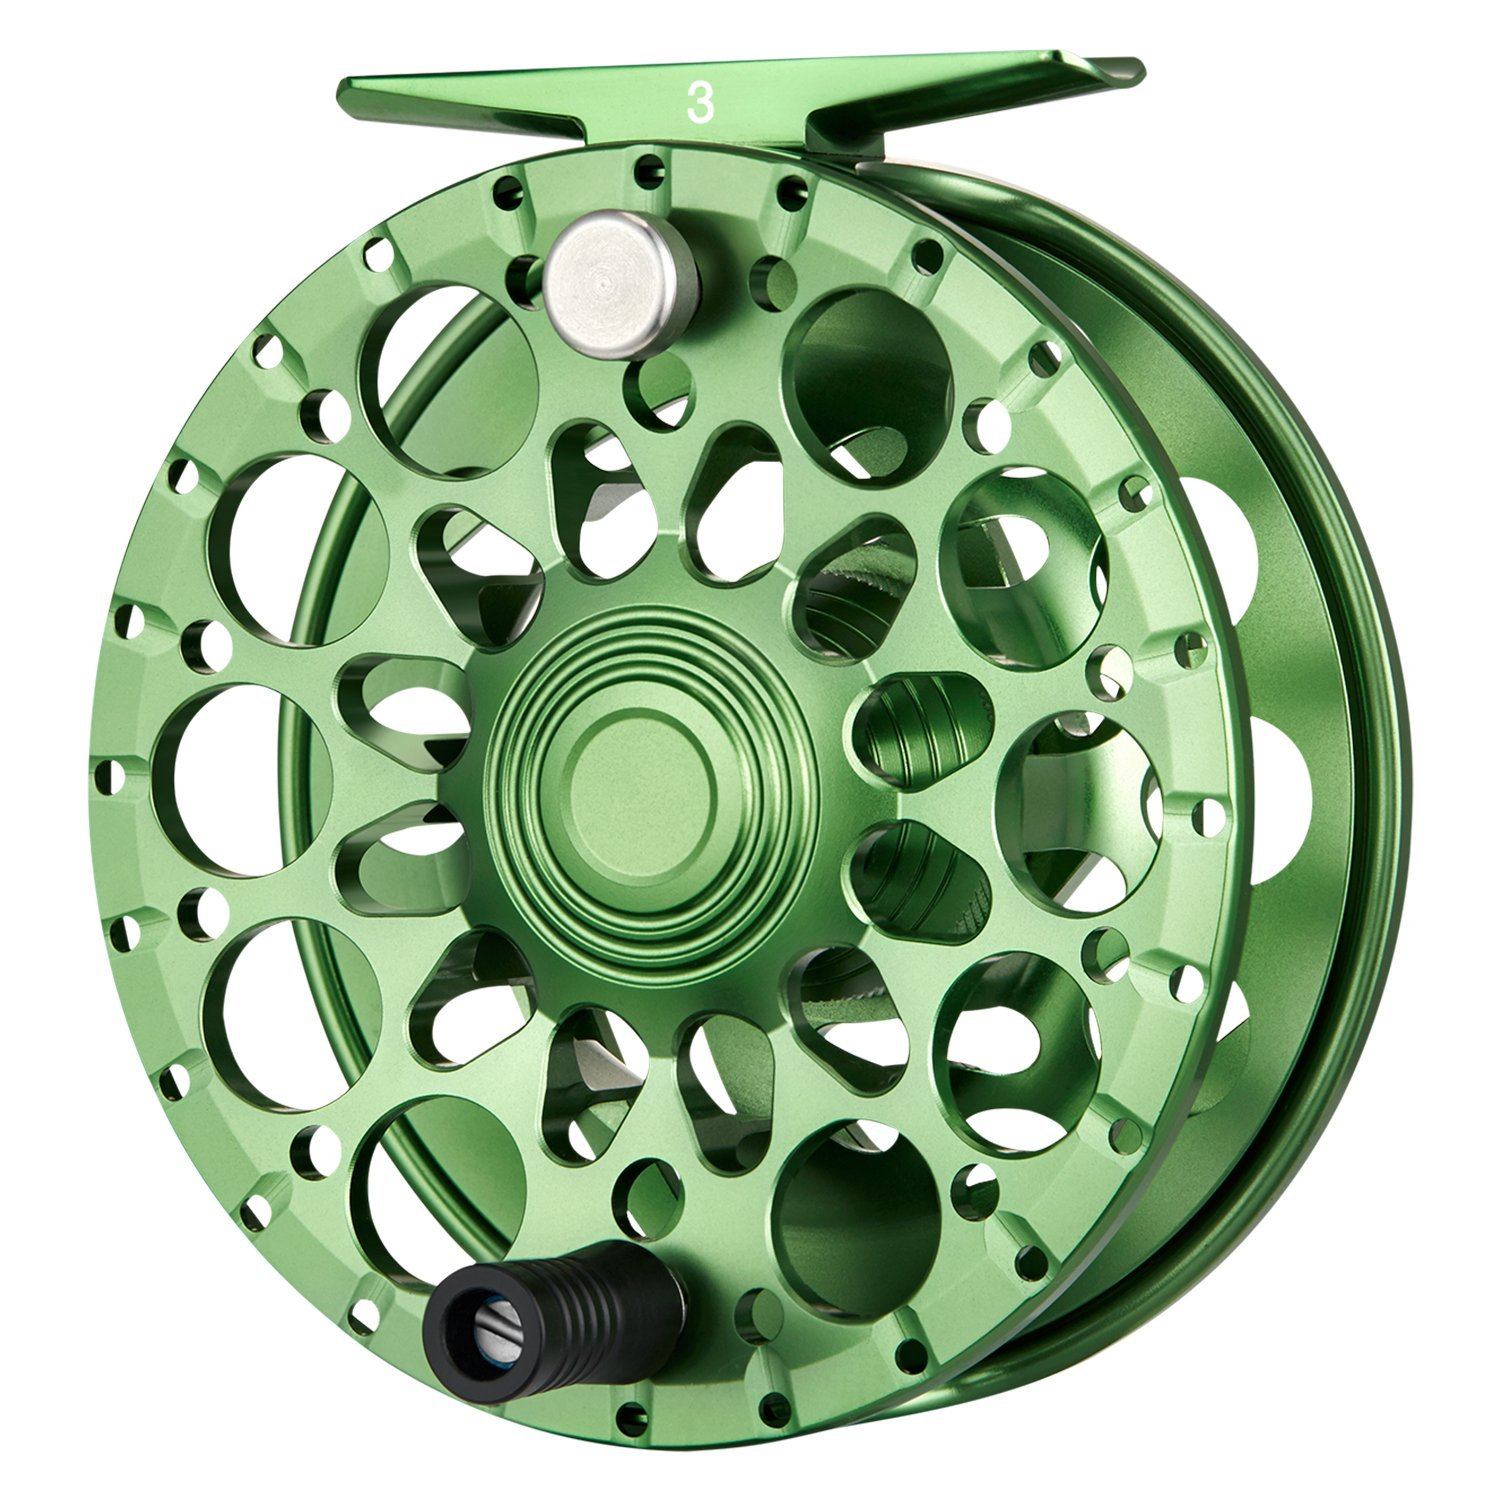 Piscifun Crest Lightweight Fully Sealed Drag Large Arbor Fly Fishing Reel Saltwater CNC-machined Aluminum Alloy Fly Reel 5/6, 7/8, 9/10 (Green,Black)